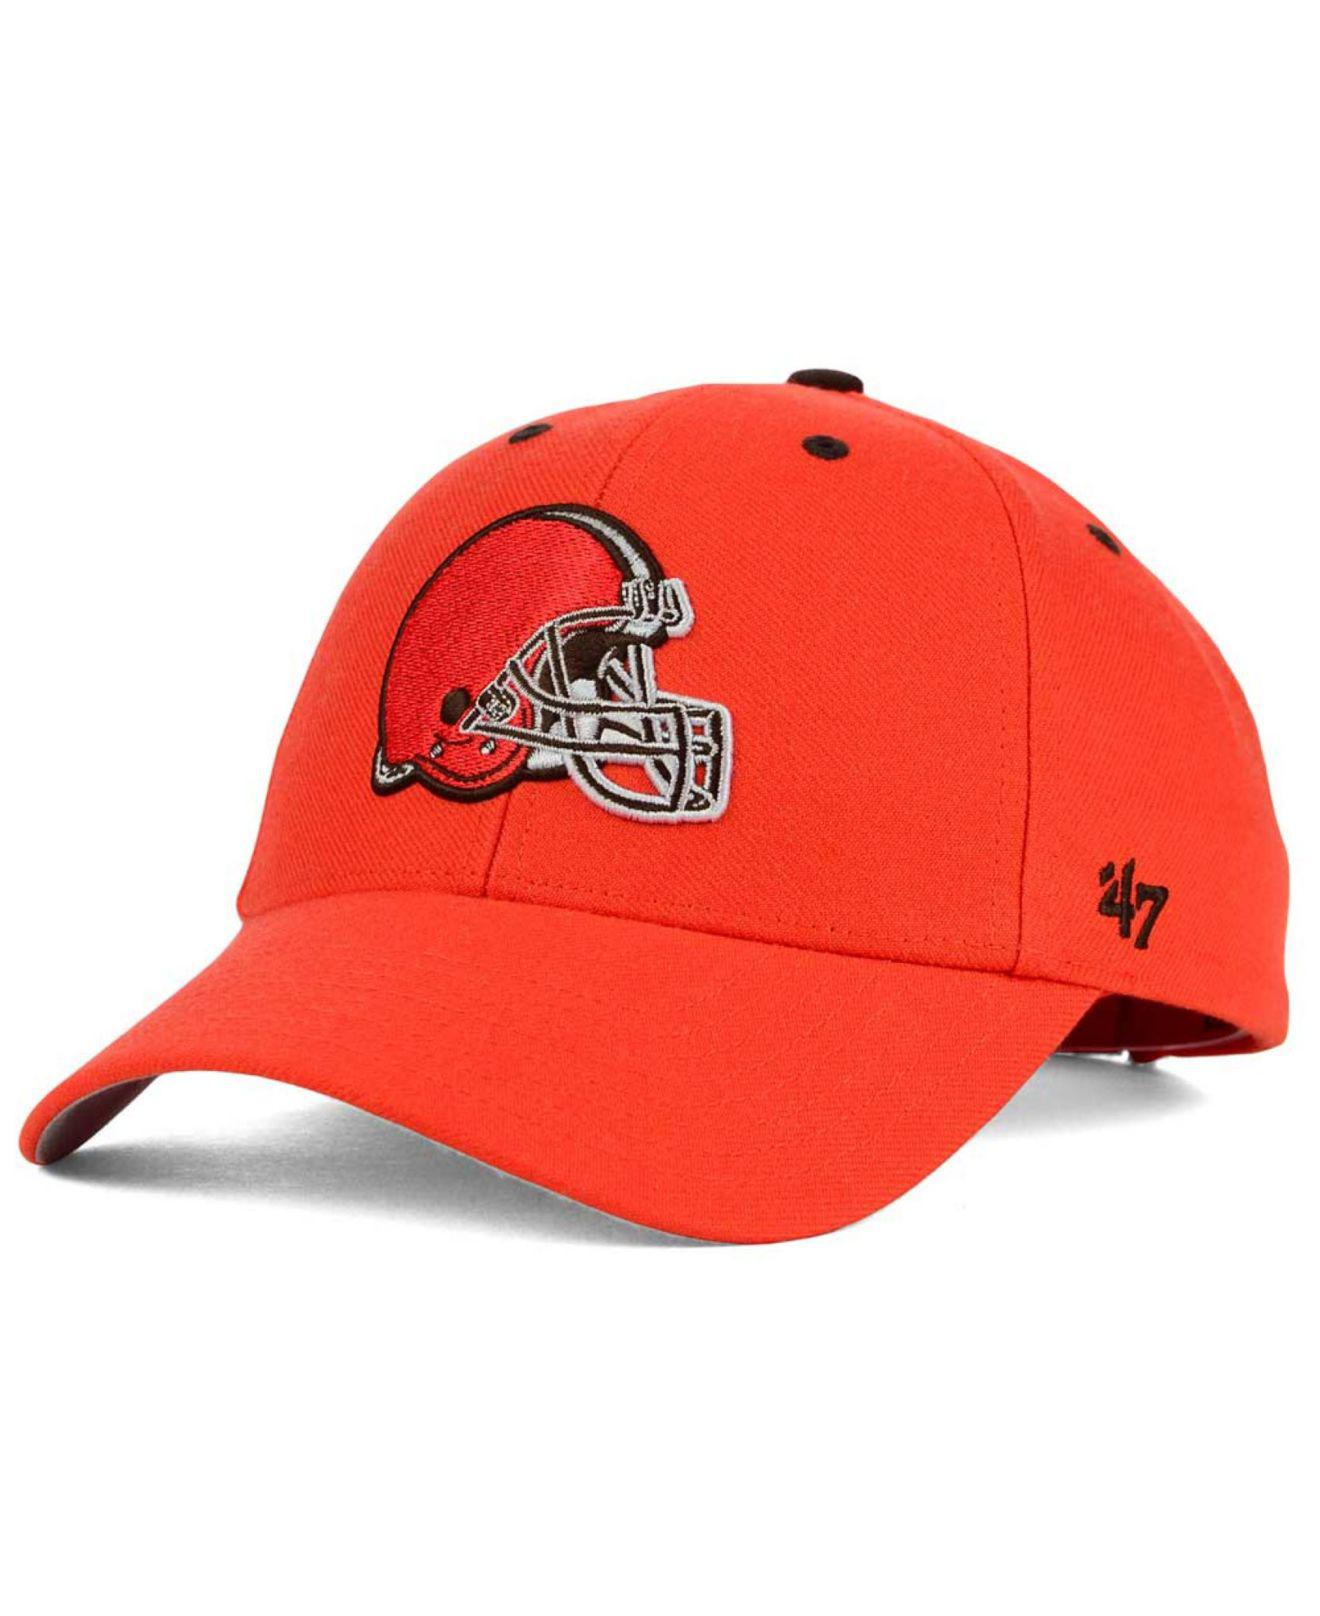 best service 44a87 eb767 Lyst - 47 Brand Cleveland Browns Audible Mvp Cap in Orange for Men